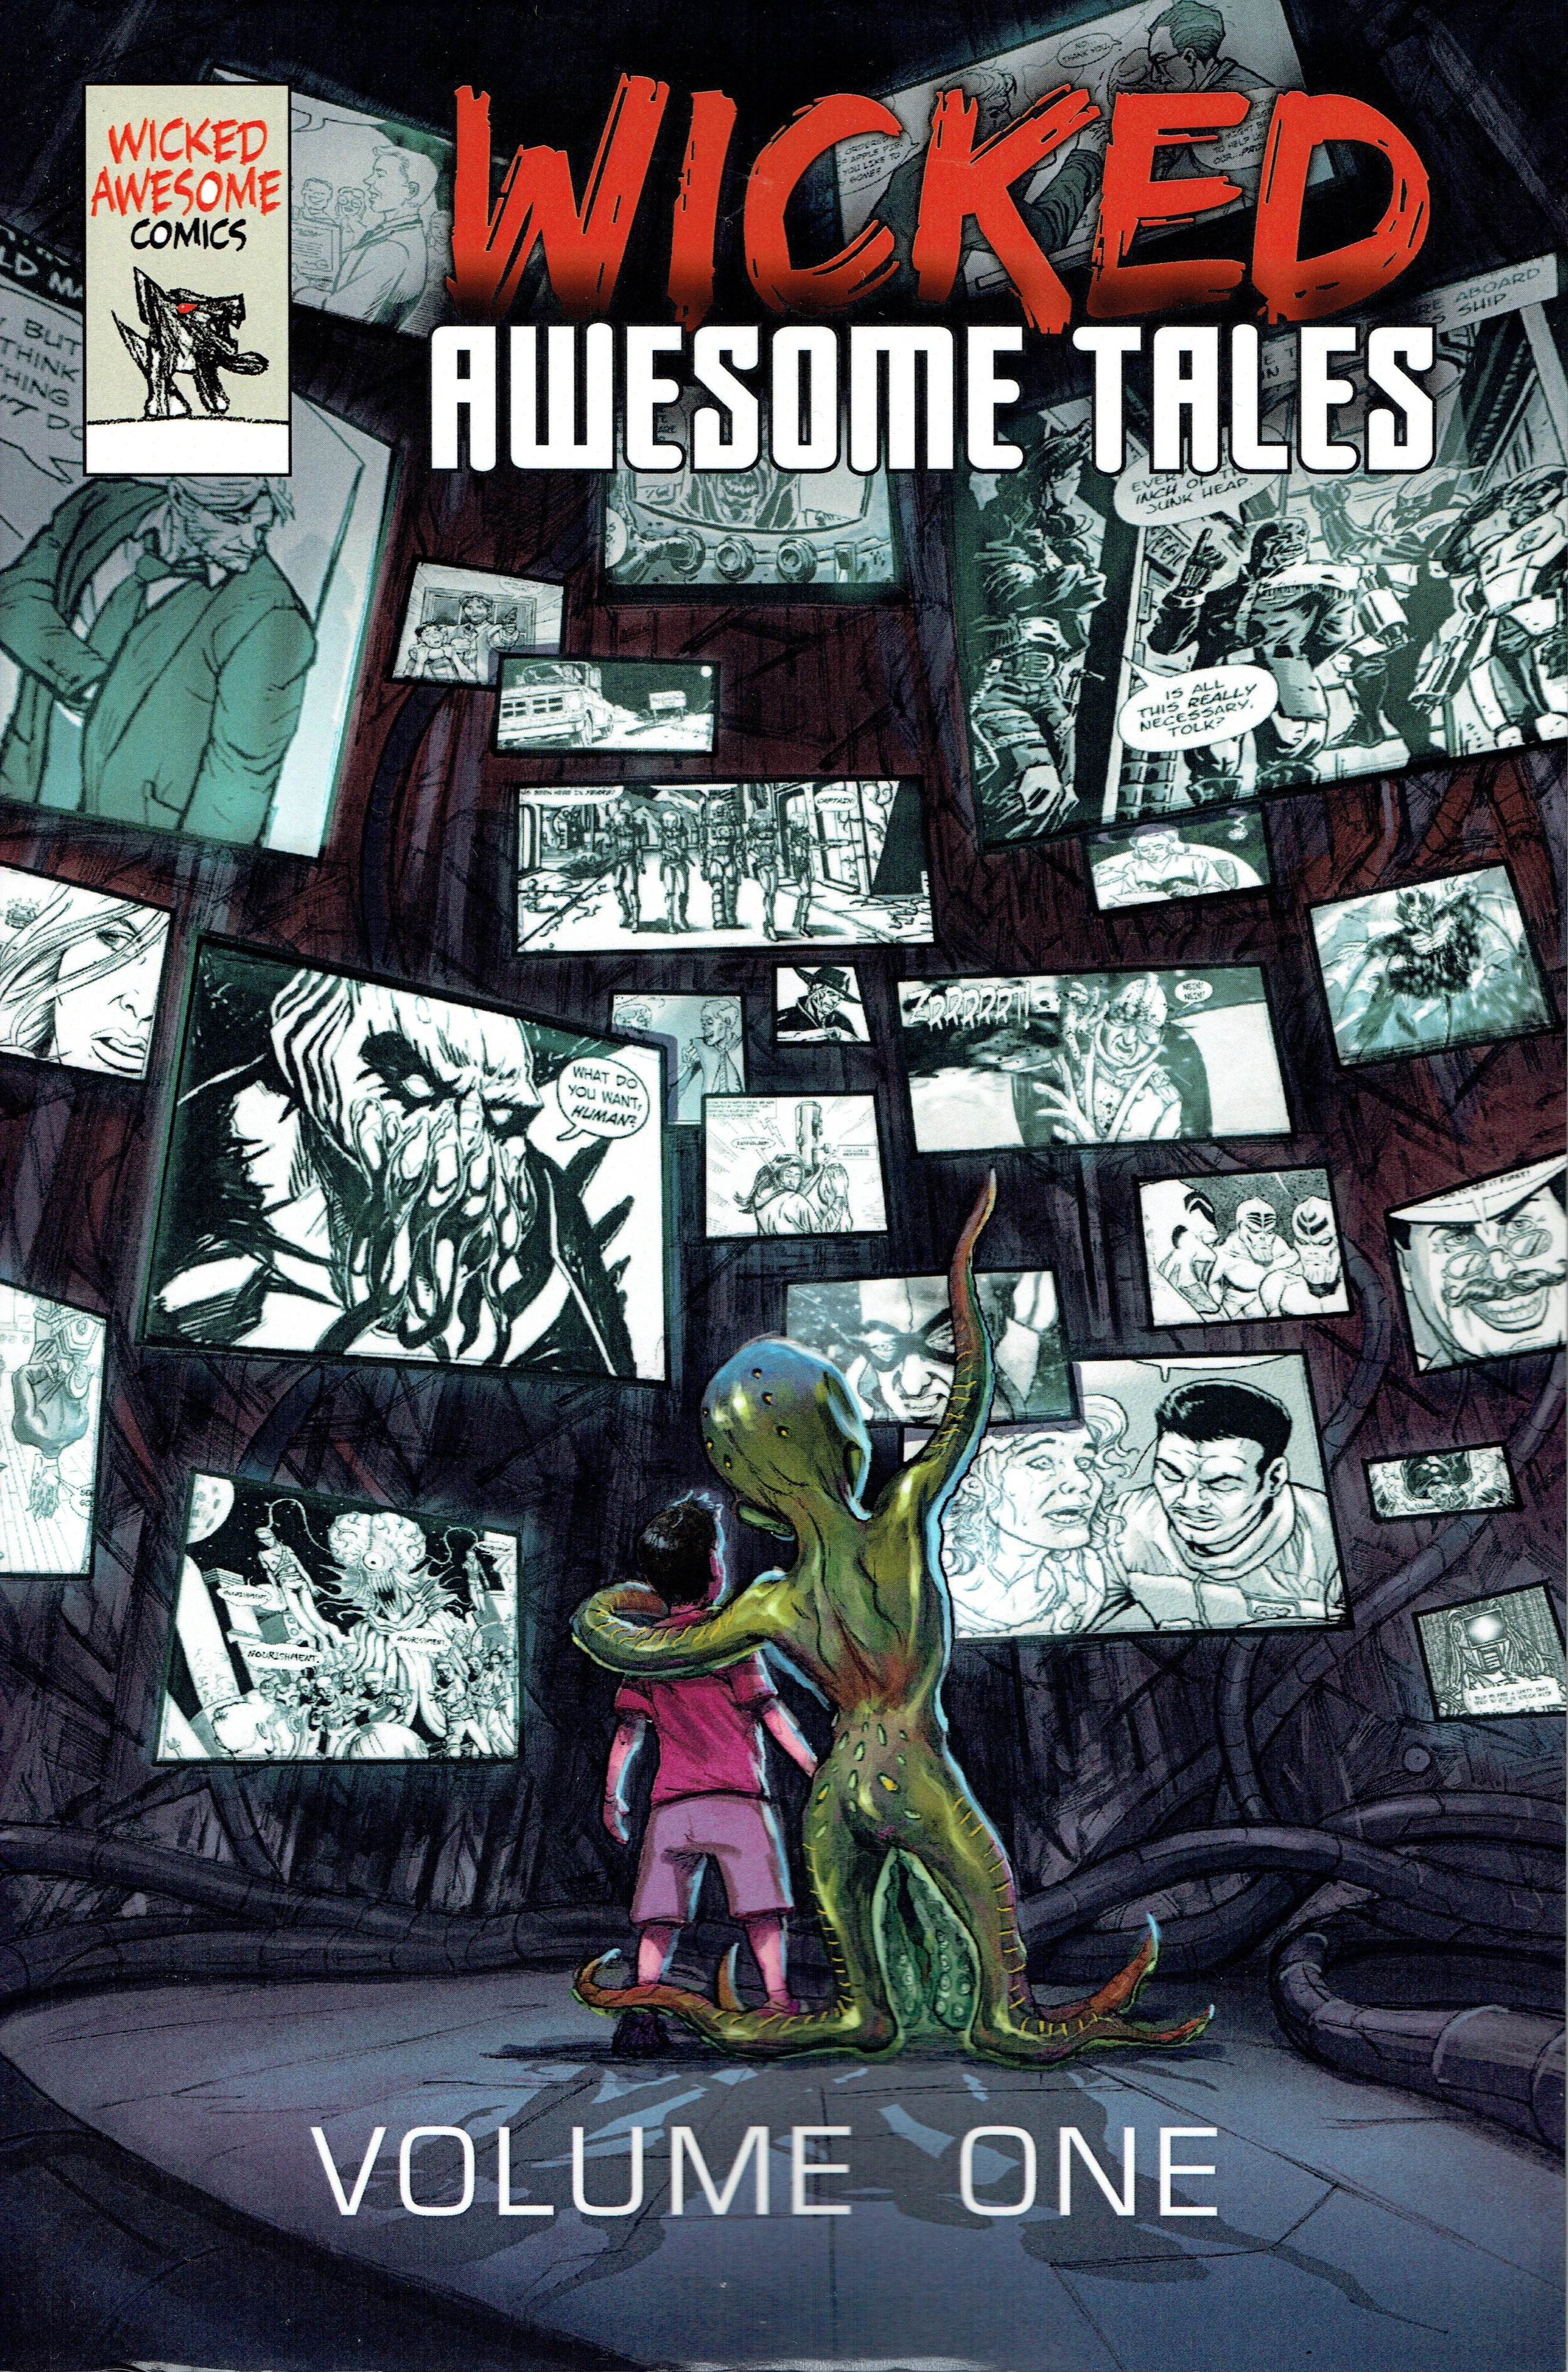 The Wicked Awesome Tales TPB from Wicked Awesome Comics.